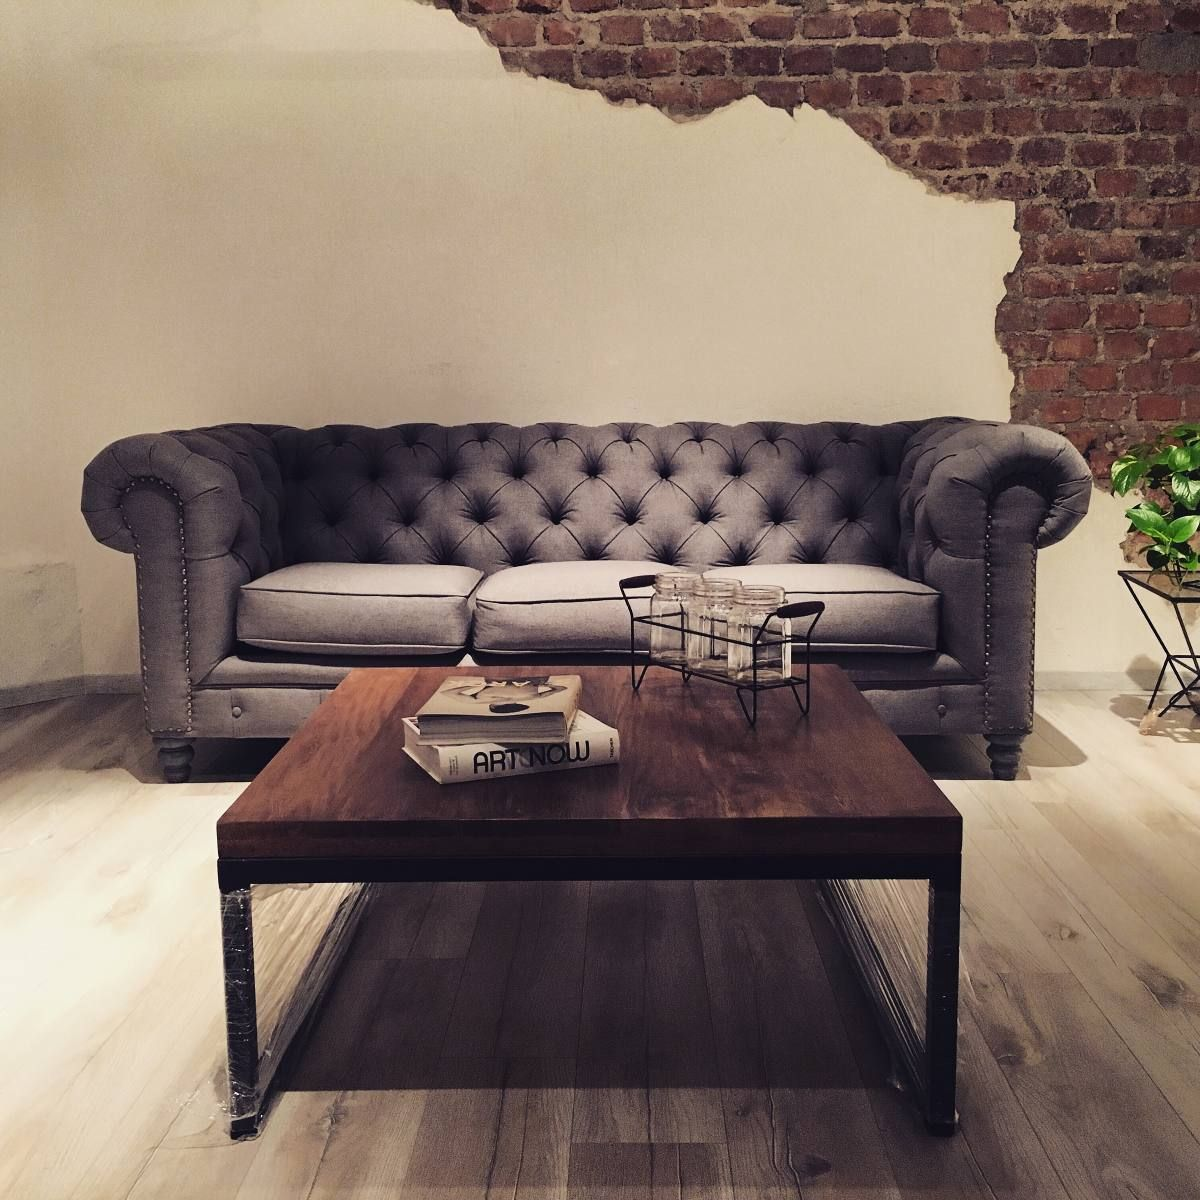 Sof Chesterfield Capiton Sala Sill N Mueble Madera Vintage  # Muebles Lourdes